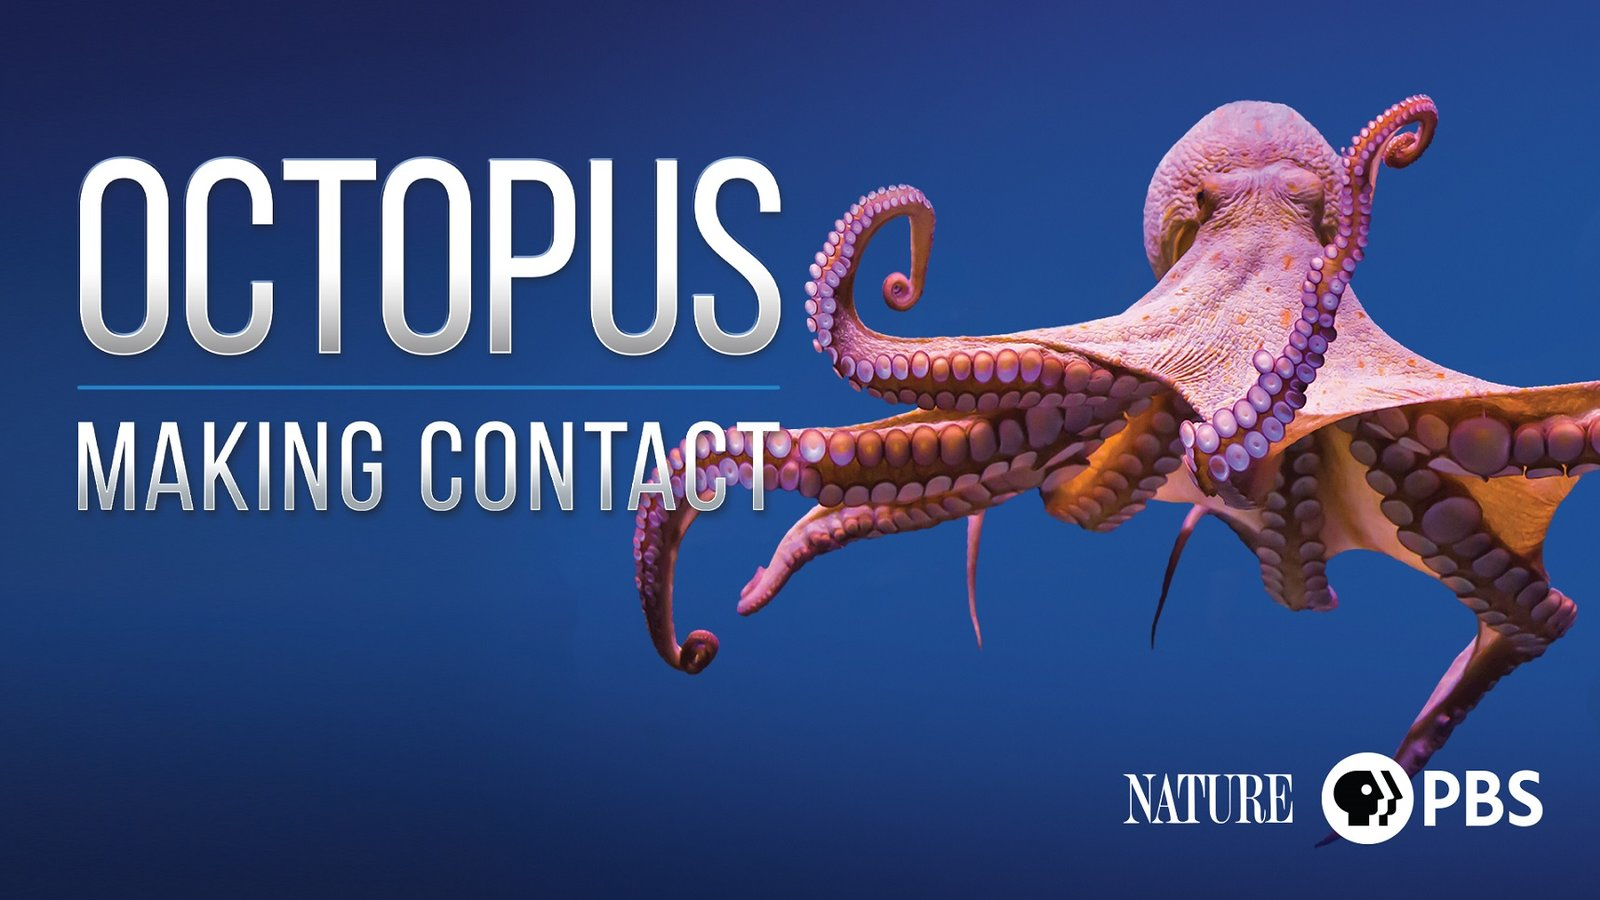 Nature: Octopus - Making Contact